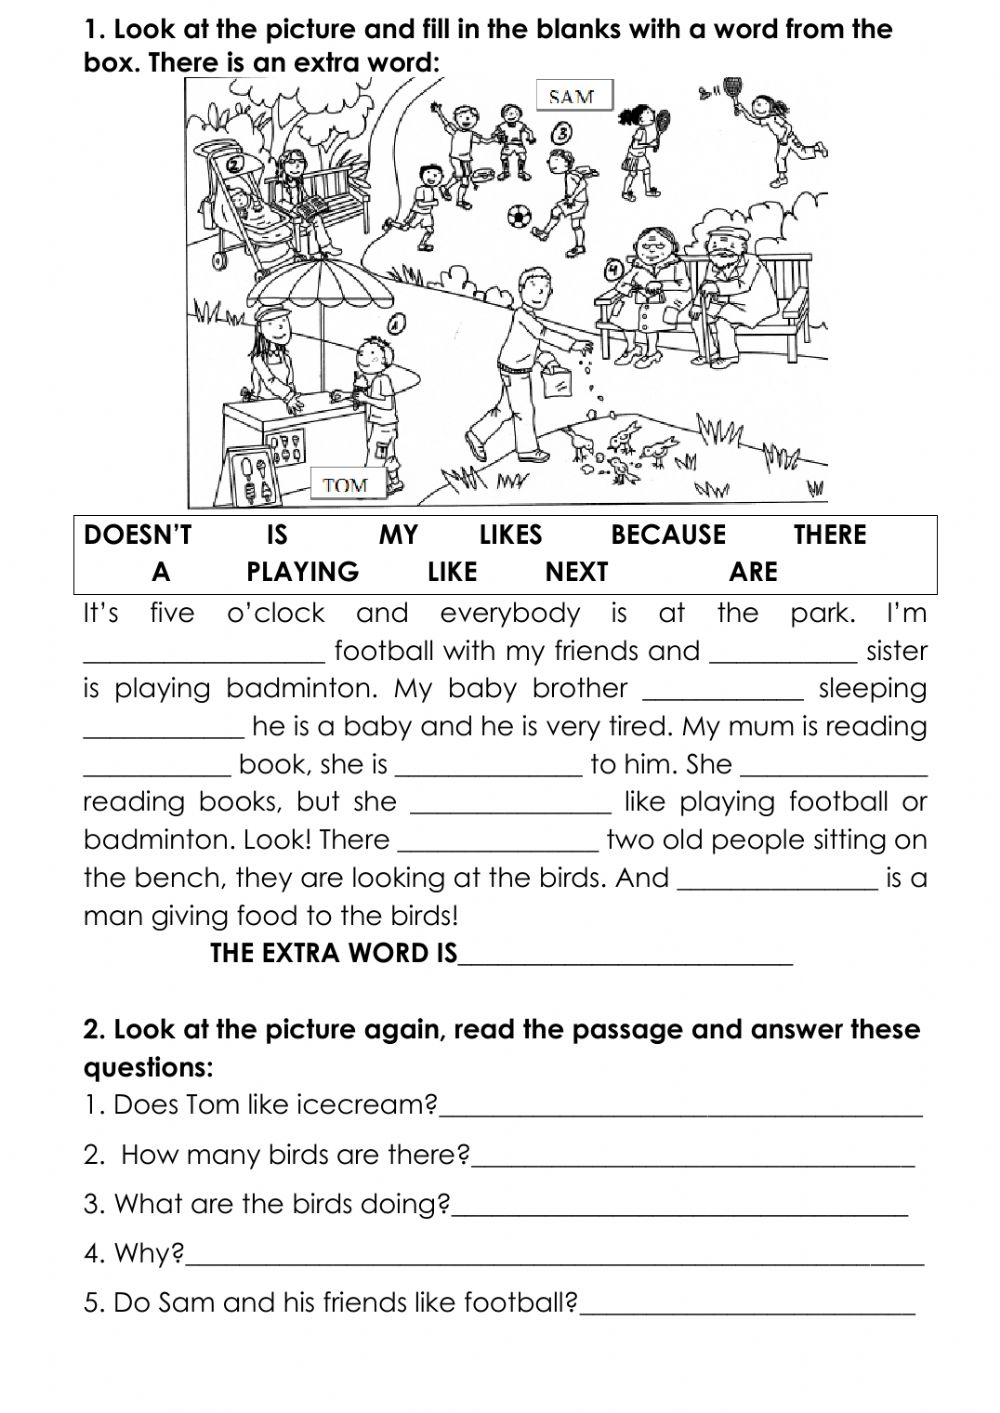 medium resolution of Cloze test for kids worksheet